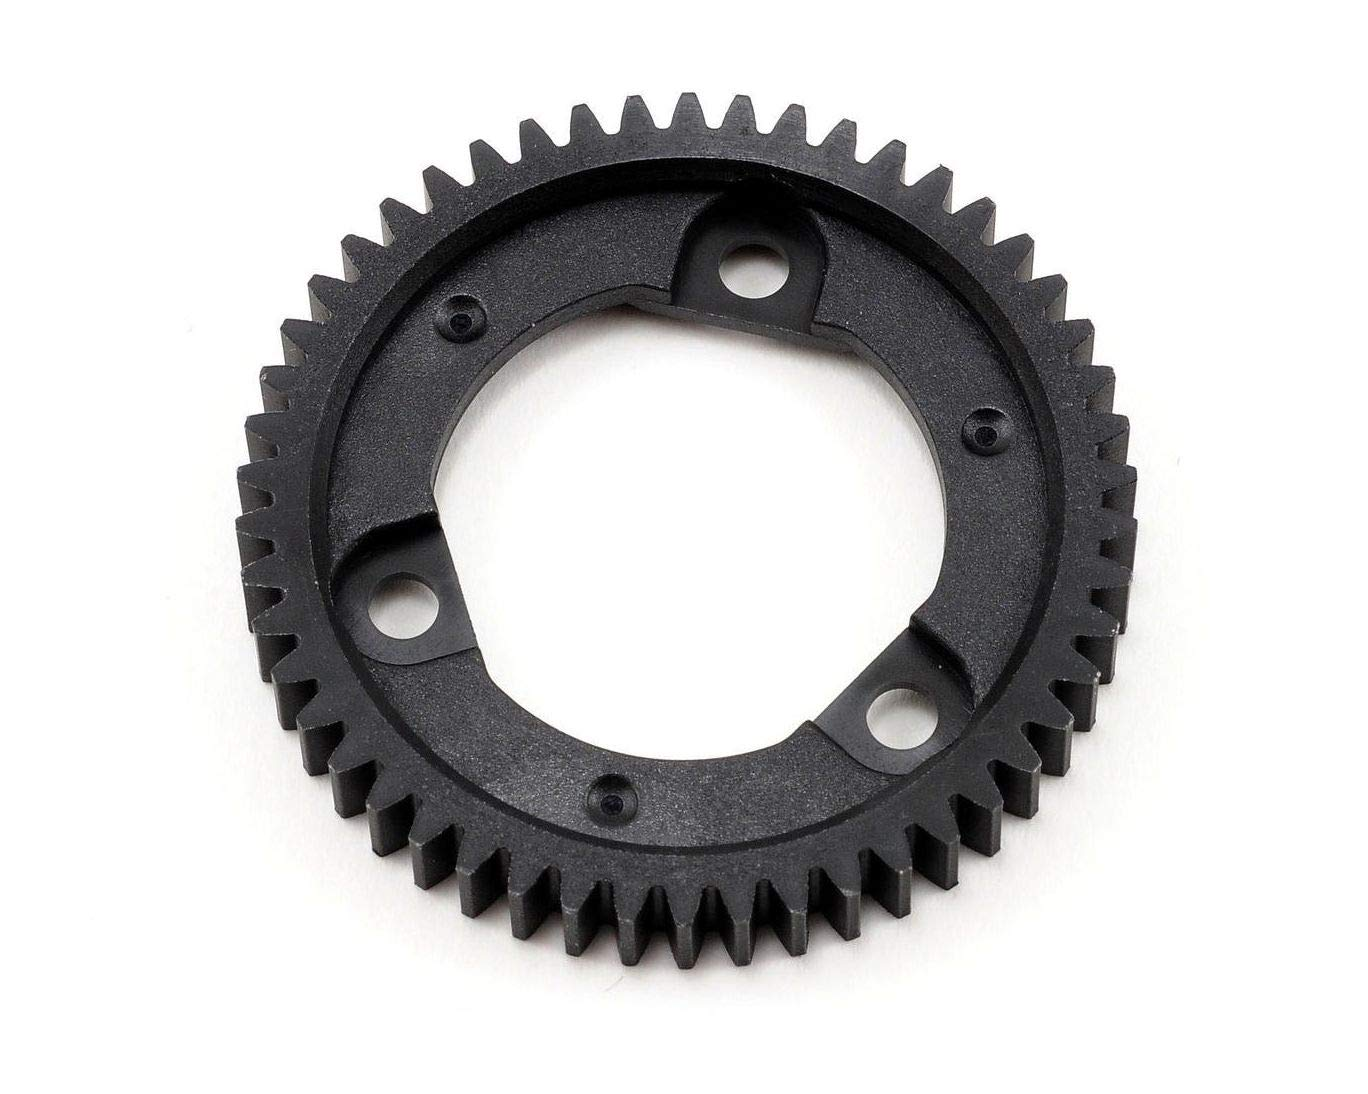 tr6842R TRA6842R TTraxxass Free shipping Max 65% OFF anywhere in the nation 32P Center Spur Gear 50 Differential